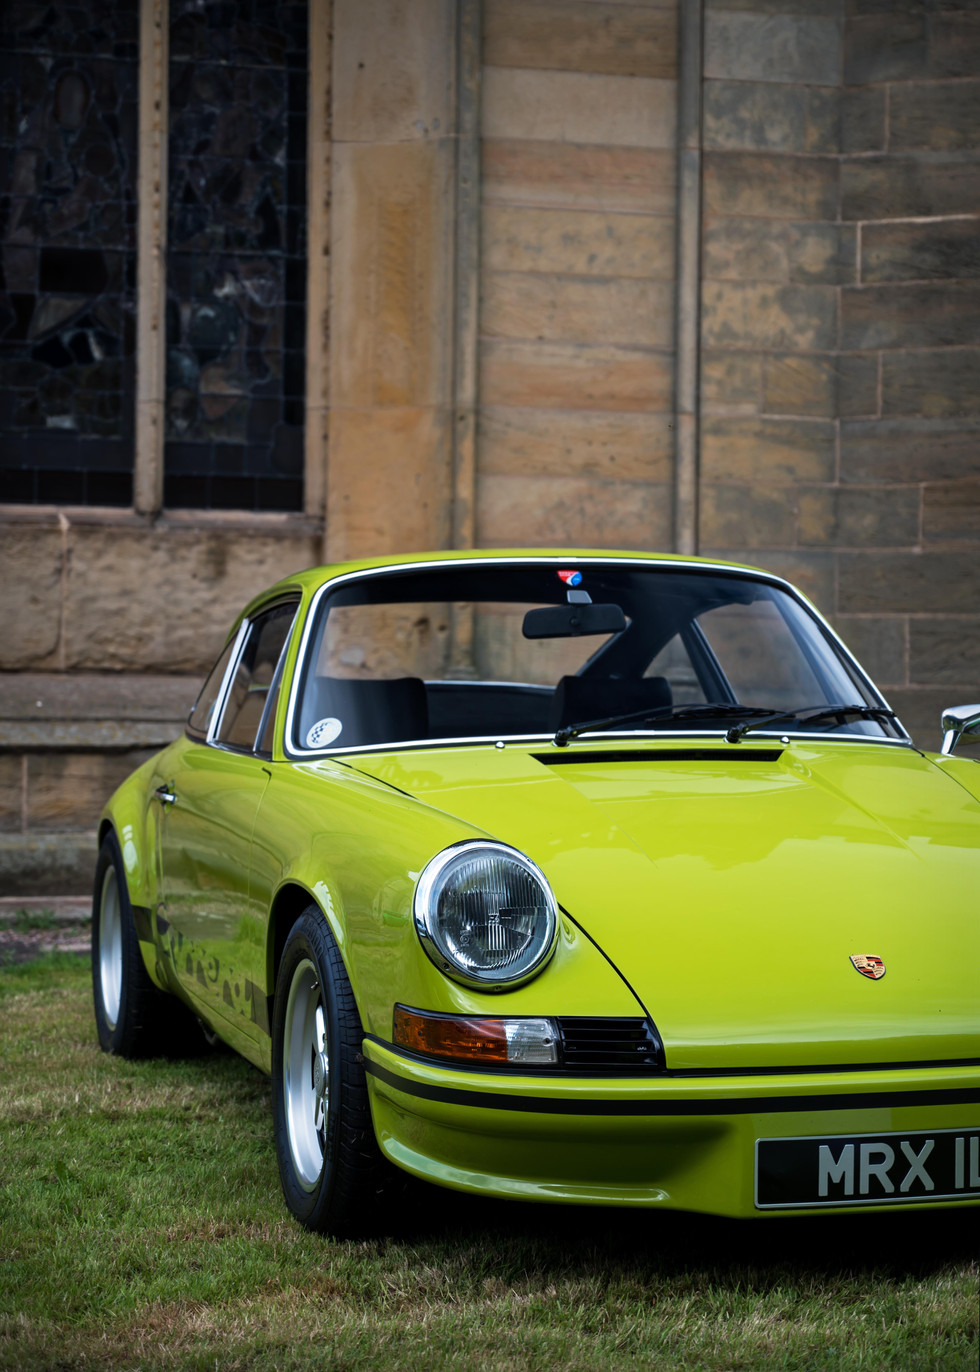 Chartreuse Green Porsche 911 Carrera RS